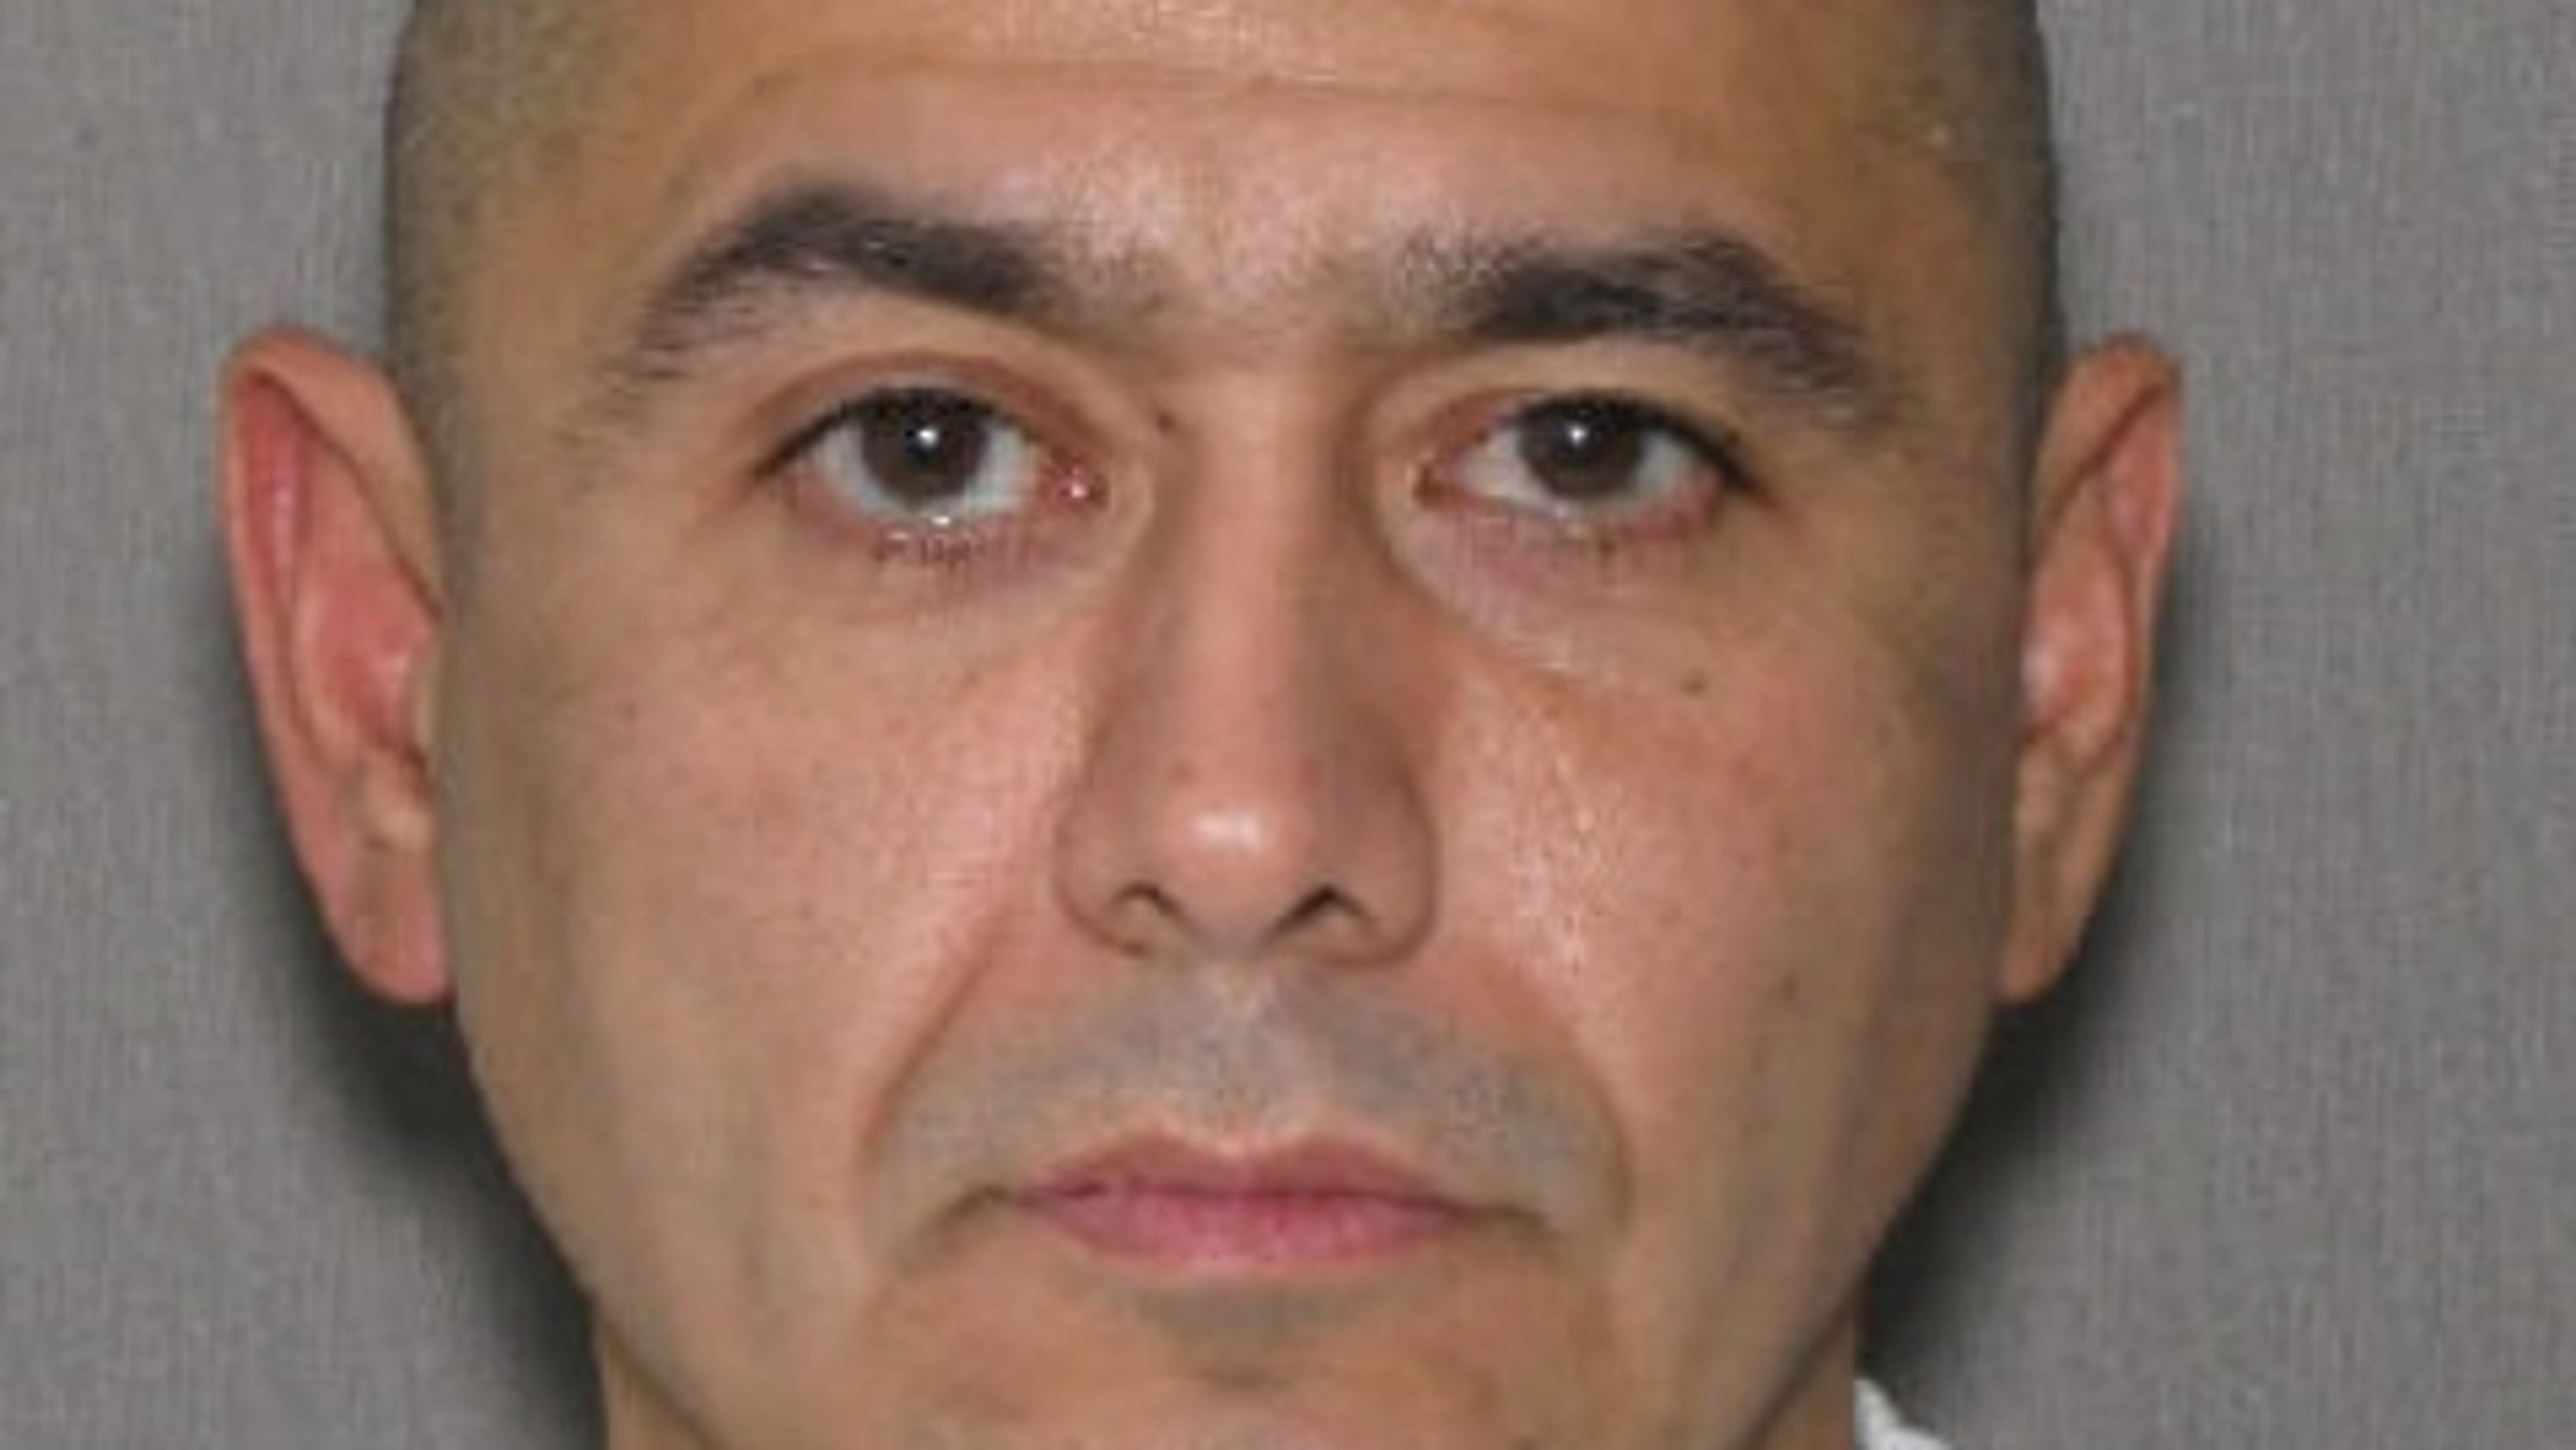 Man On Texas Dps Most Wanted List Has Ties To San Antonio